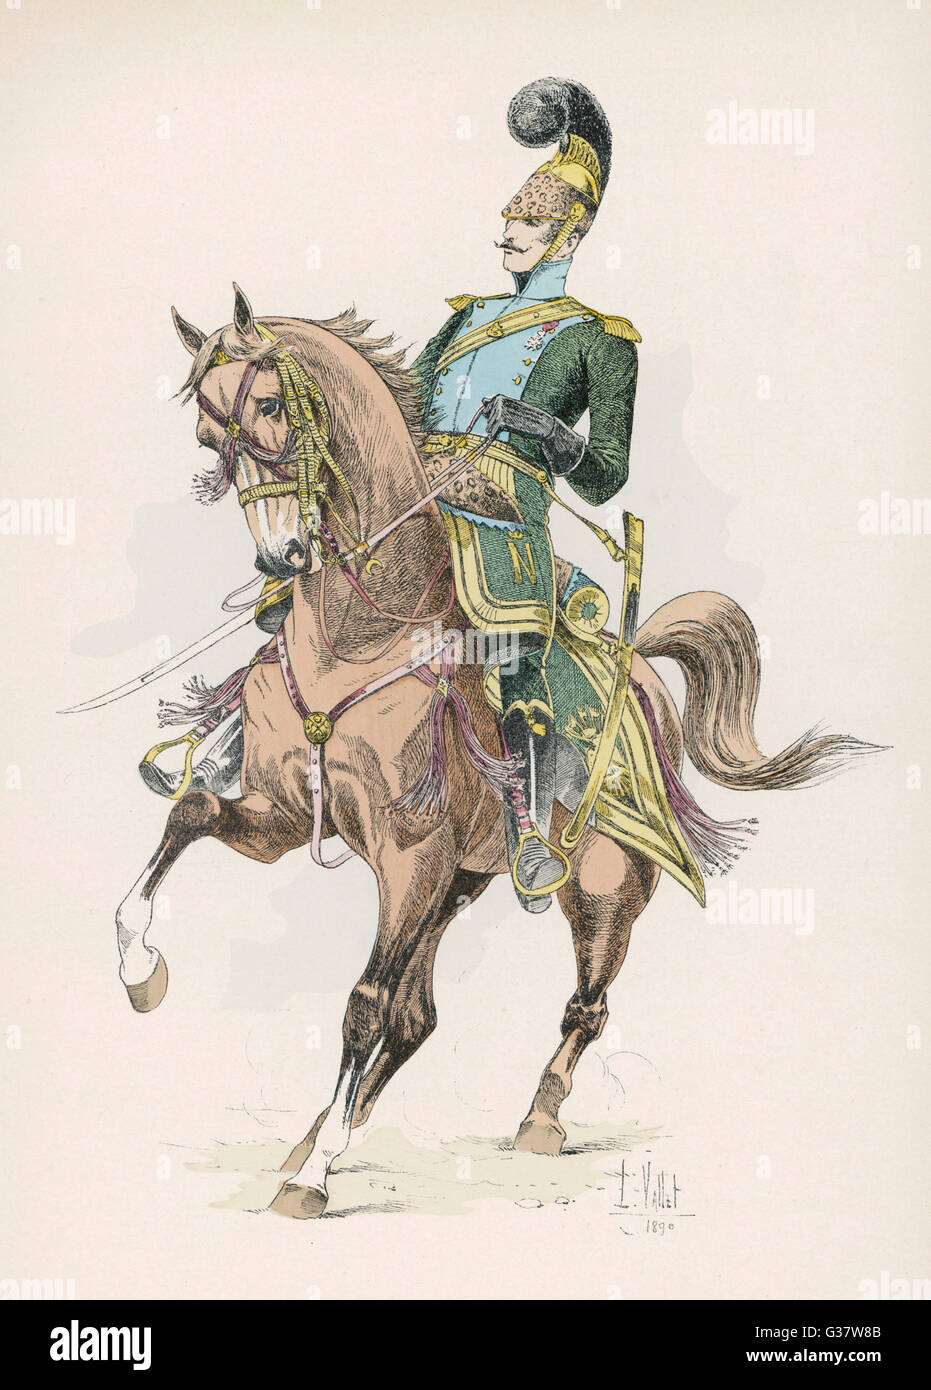 A French mounted lancer.         Date: 1813 - Stock Image